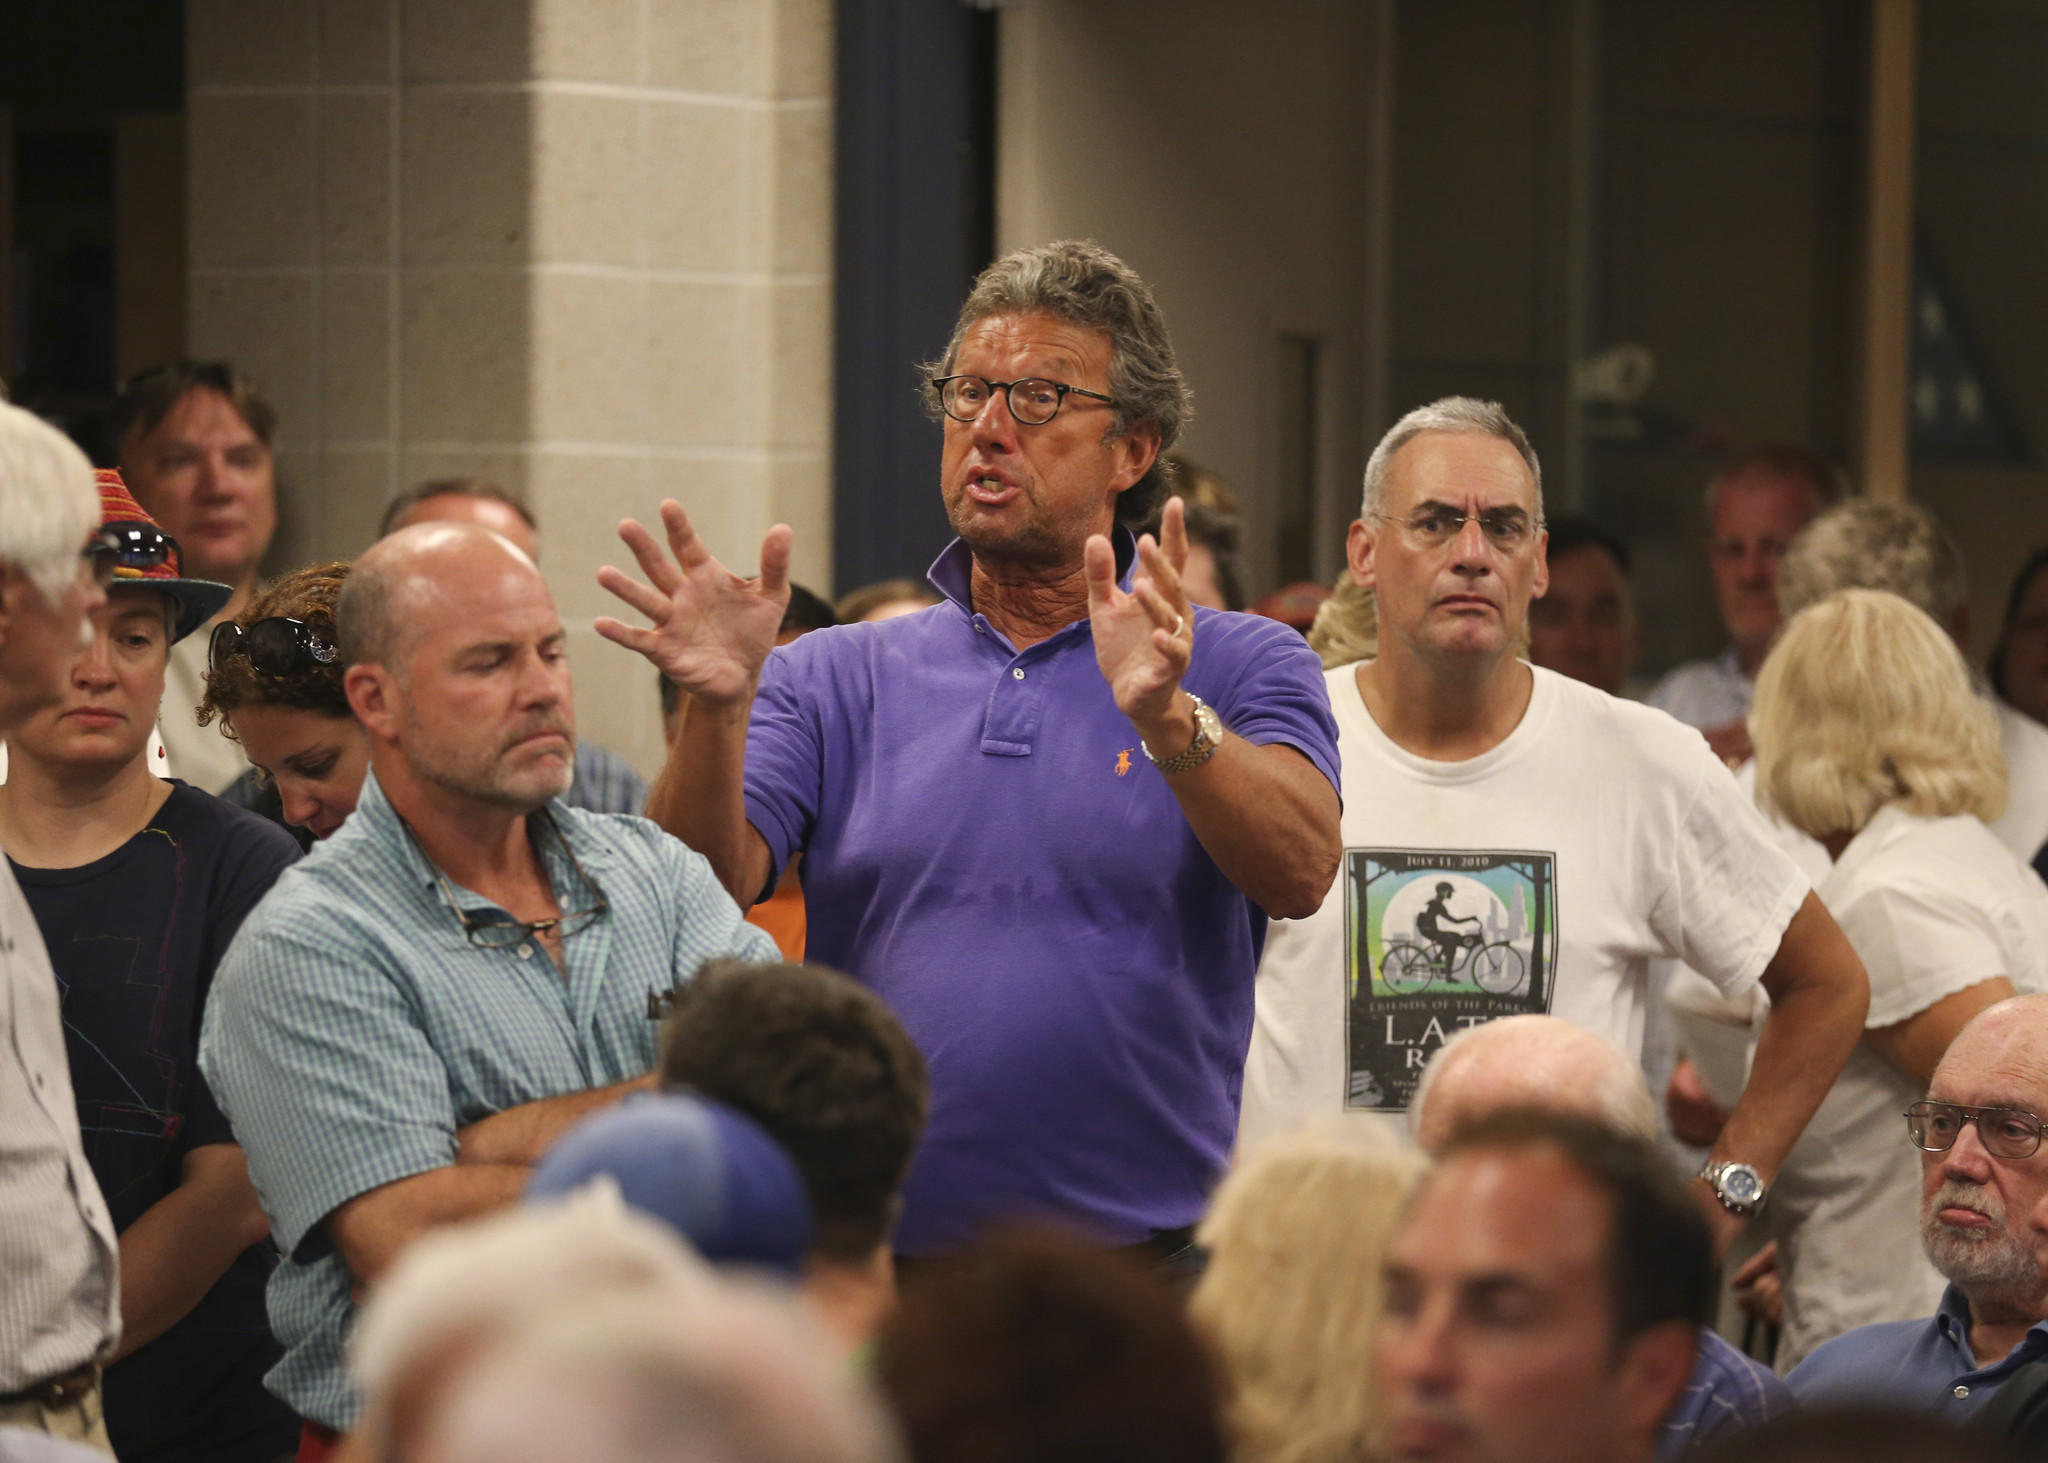 Lakeview residents met with representatives of the Chicago Cubs at the 19th District Police Station Monday night to discuss concerns about the proposed Wrigley Field renovations.